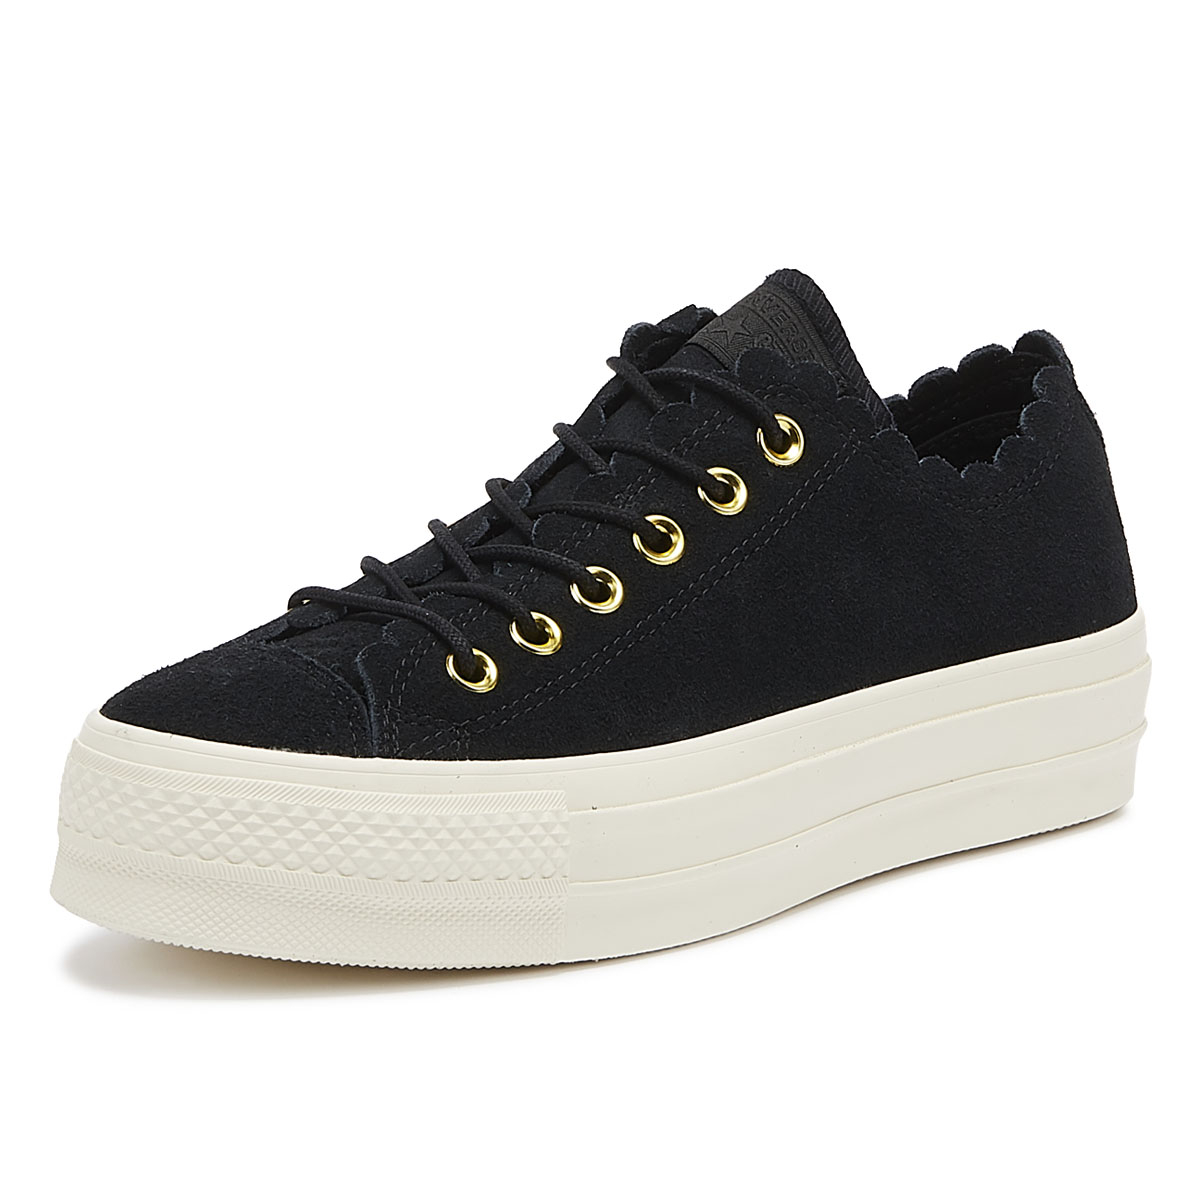 939029f03f29 Details about Converse Chuck Taylor All Star Lift Frilly Thrills Womens  Black Trainers Shoes